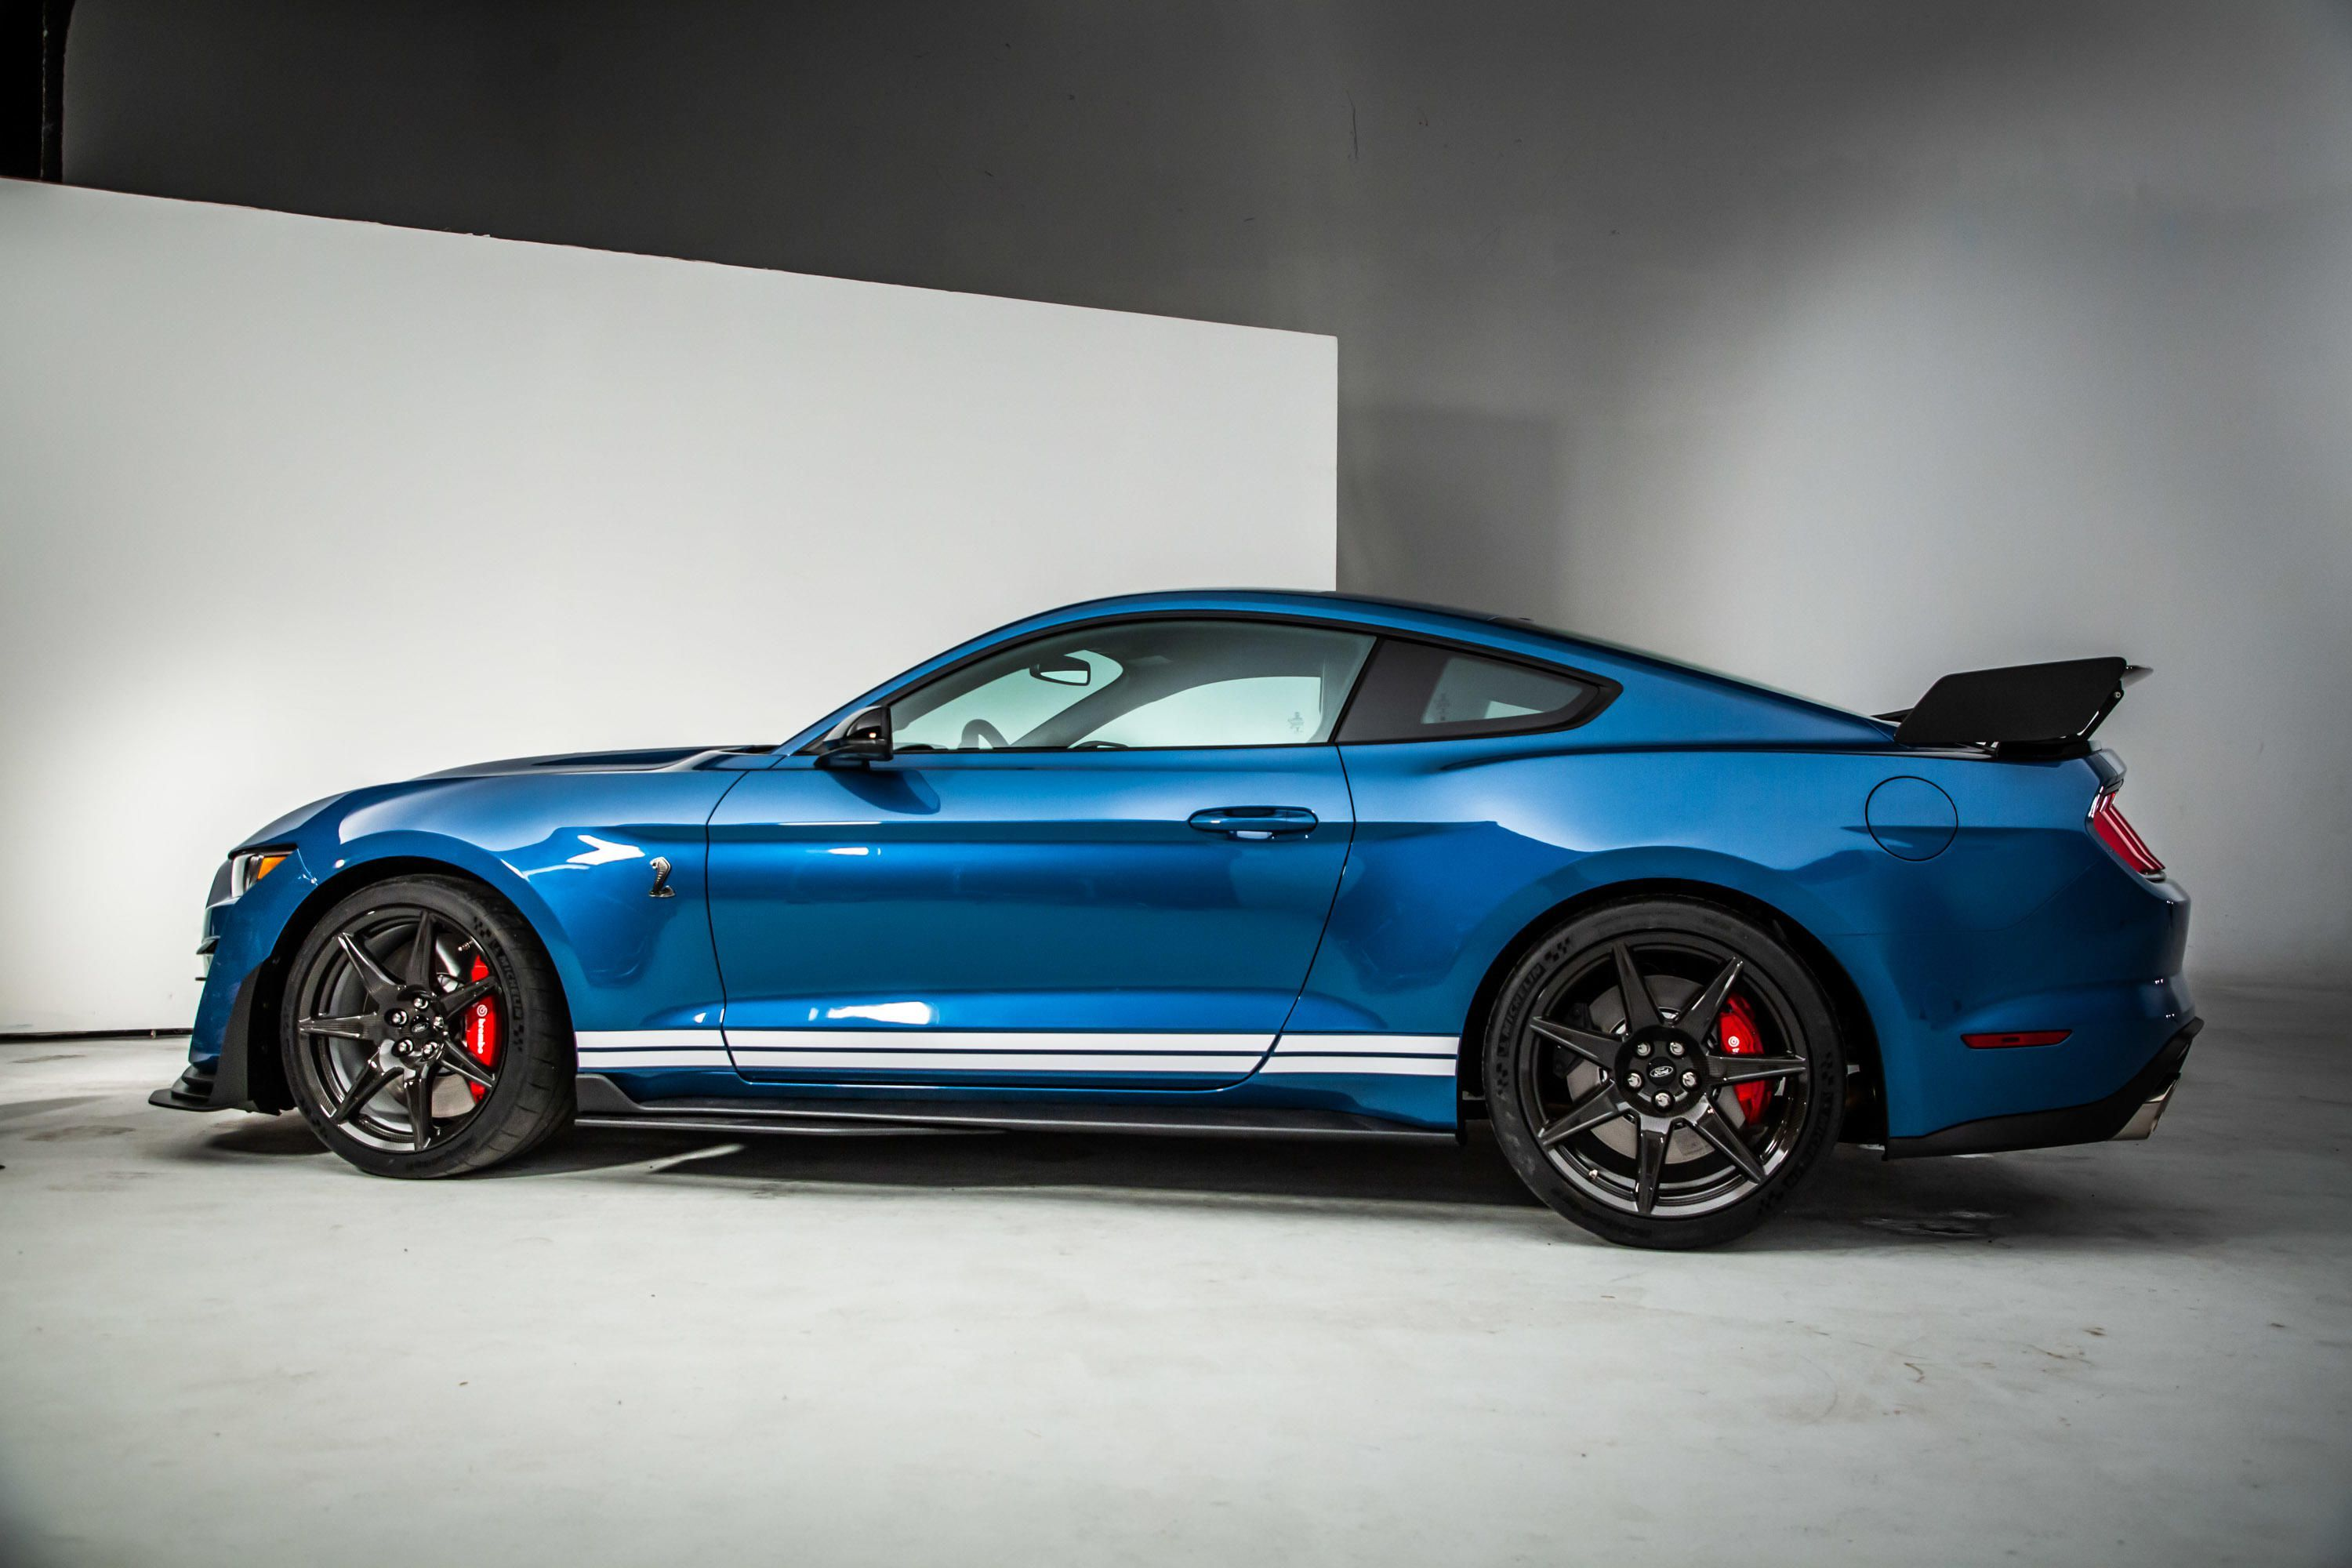 2020 Ford Mustang Shelby GT500 brings 760 horsepower to ...